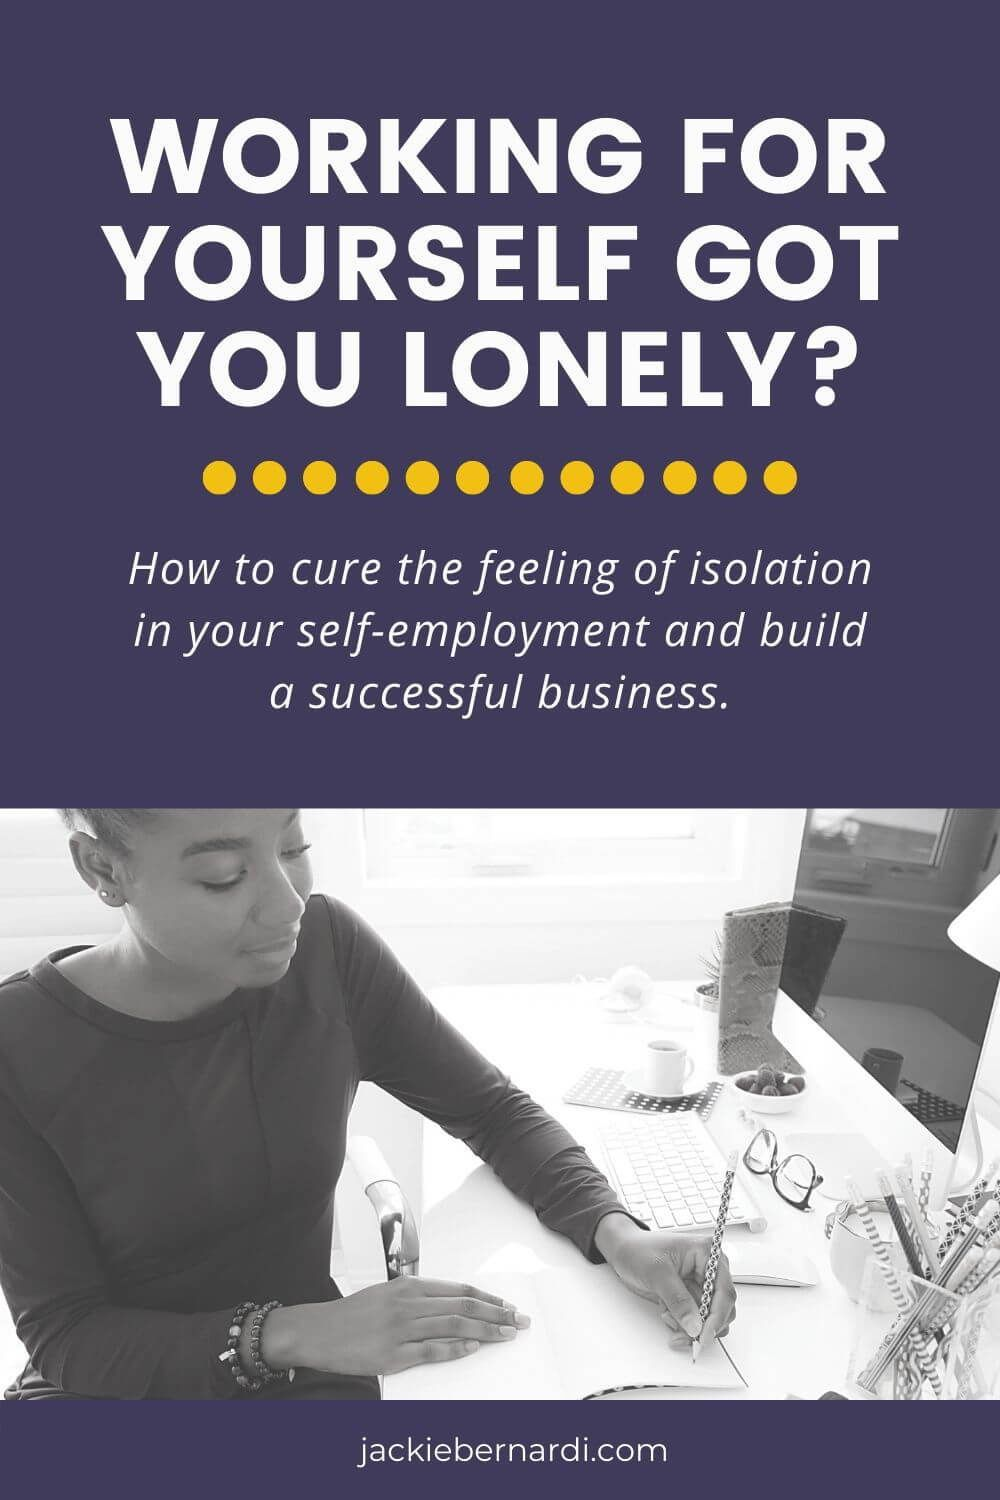 Are you feeling isolated in your self-employment? | Jackie Bernardi  Do you miss having a place to GO to do your work? Someplace that isn't your kitchen table, guest bedroom, or dining room that serves as your makeshift office? Yeah, me too. In this post, I share how you can change that feeling into connection, productivity, and professional development. Being a Solopreneur does not have to be lonely. #professionaldevelopment #selfemployment #accountability